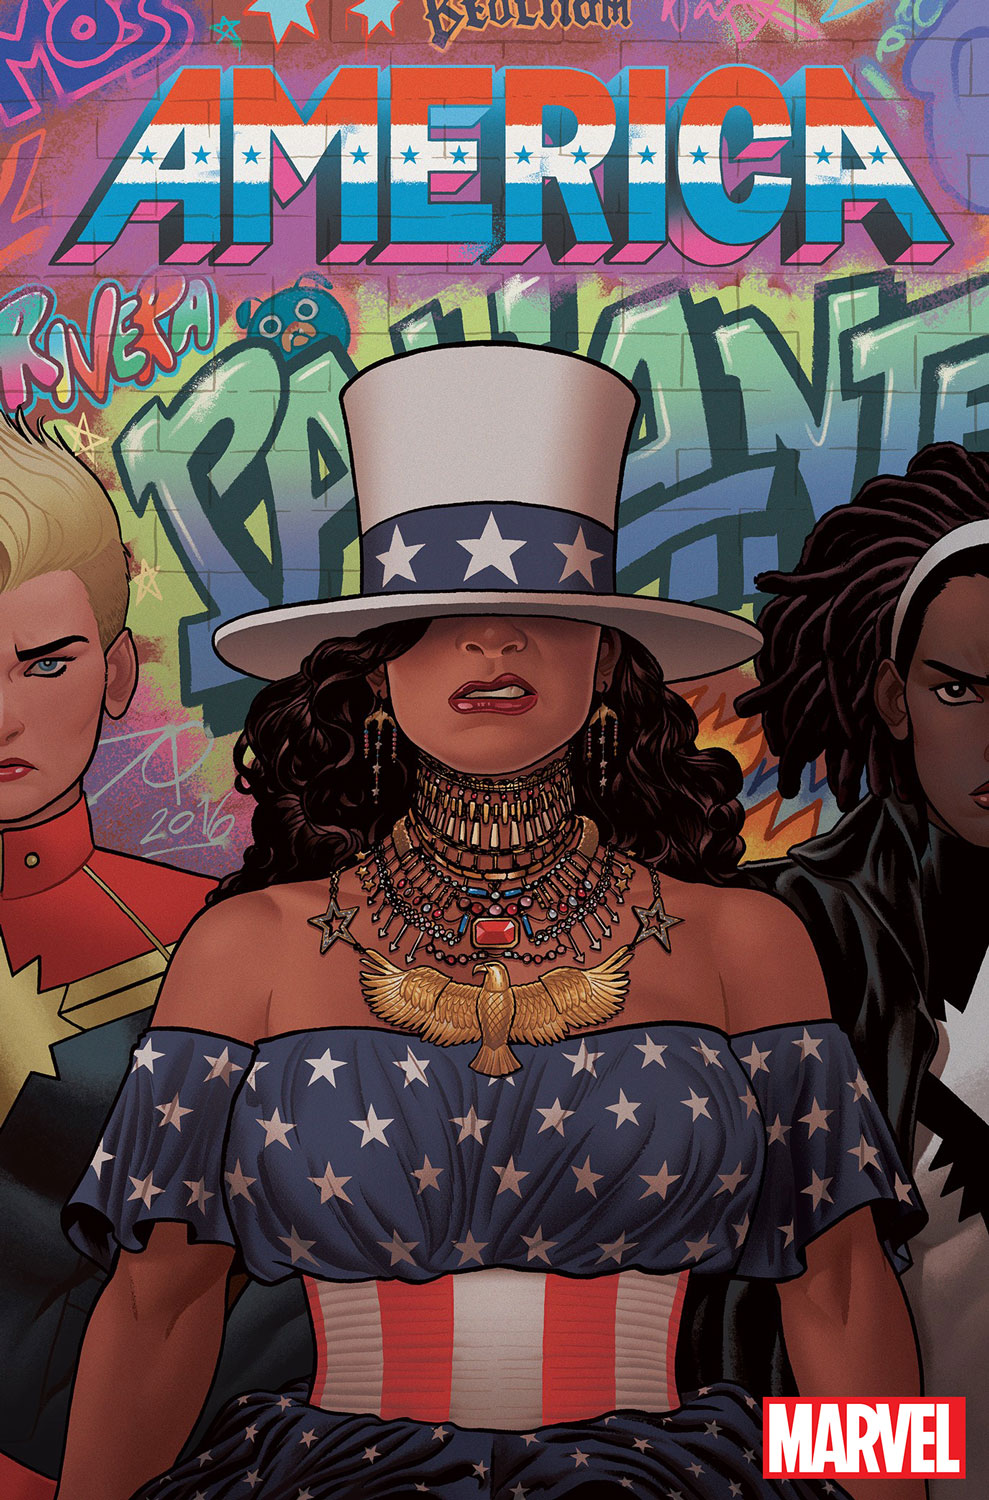 This Marvel comic book cover is a tribute to one of Lemonade's most iconic images.